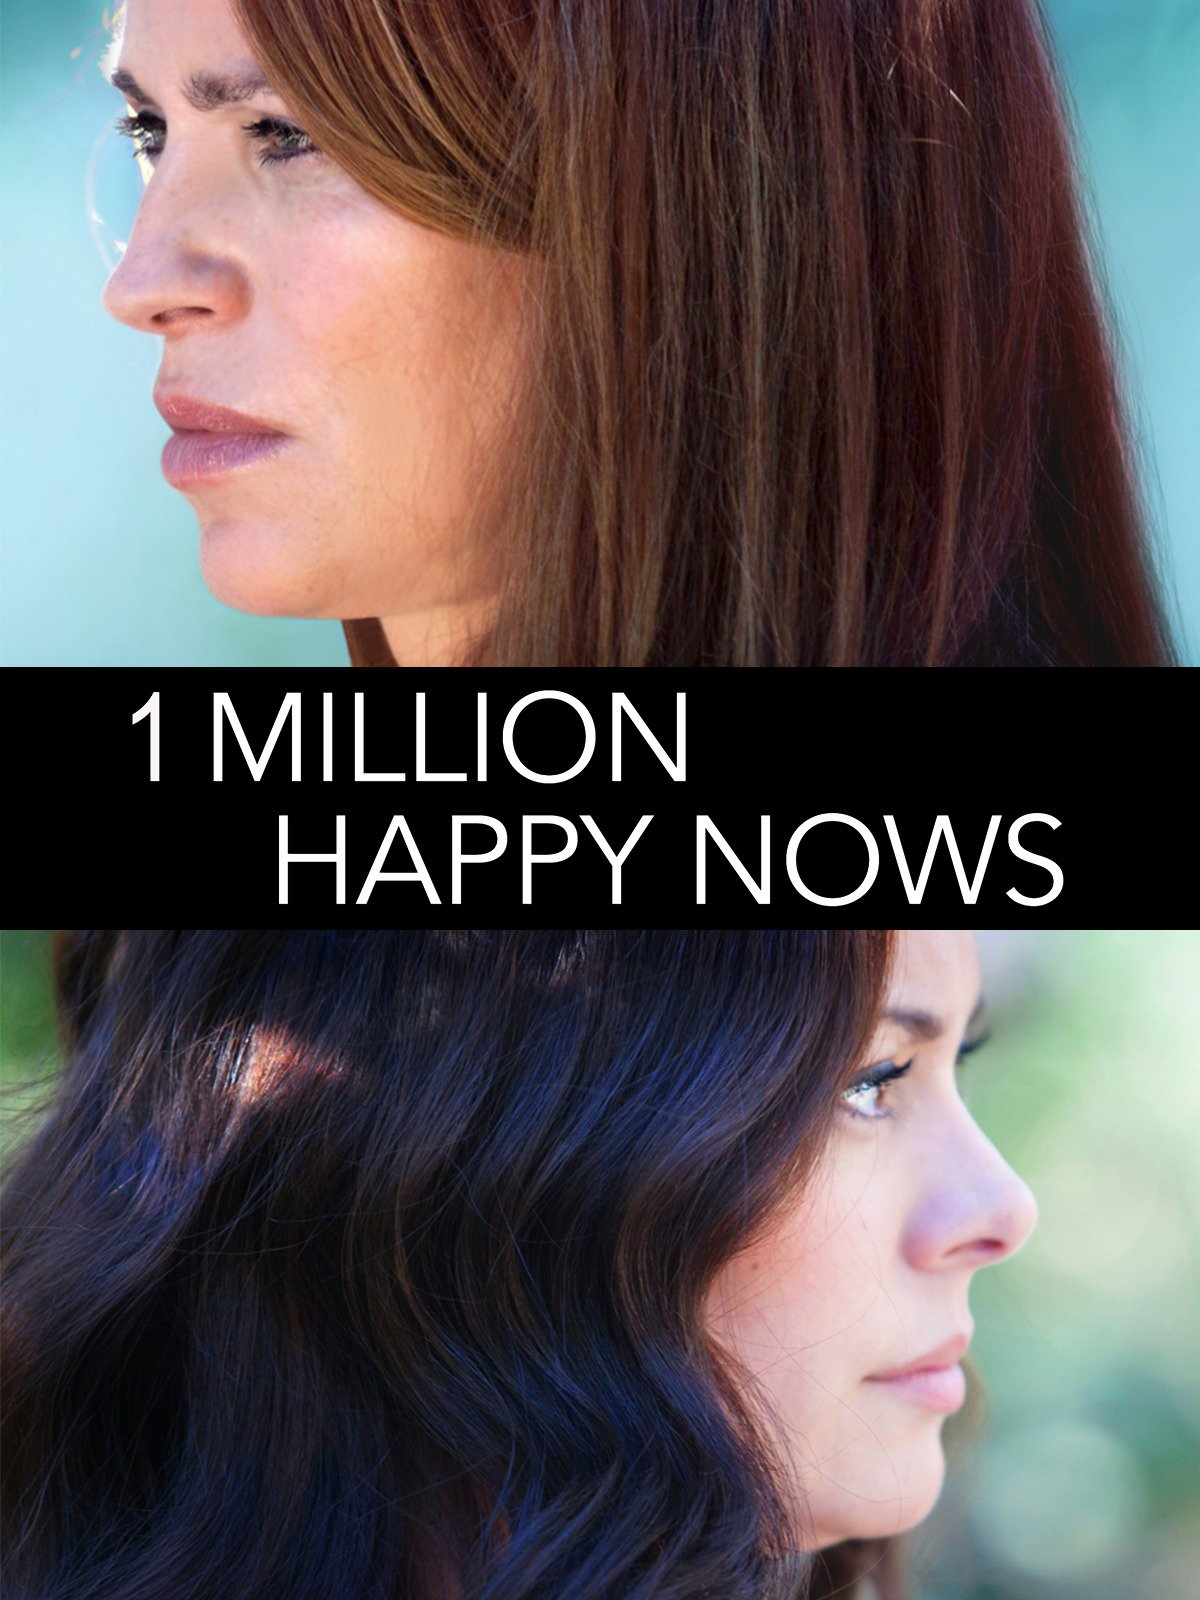 Amazon.com: 1 Million Happy Nows: Crystal Chappell, Jessica Leccia ...